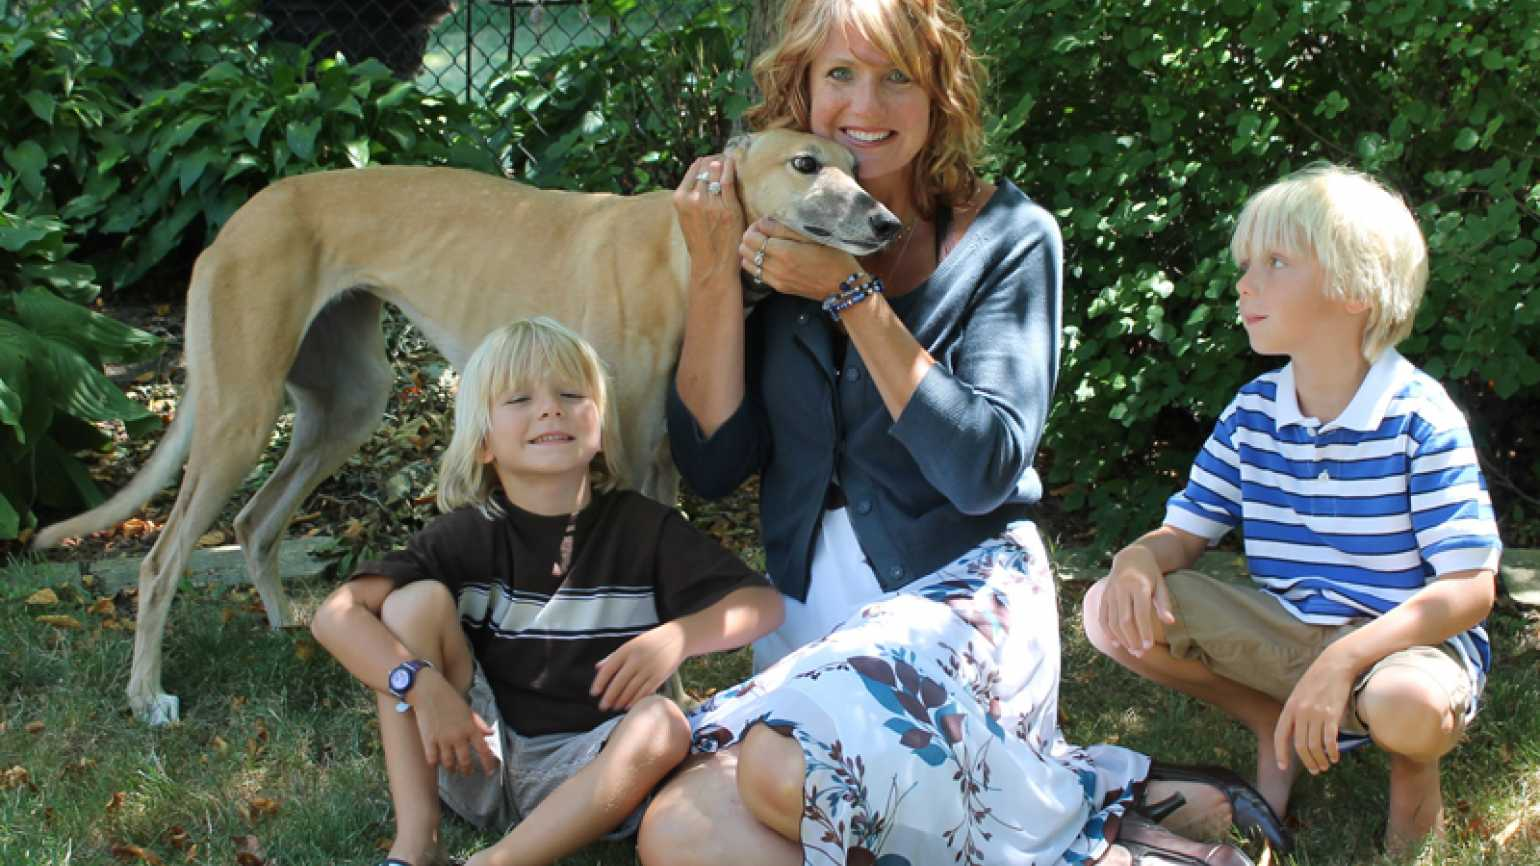 Shawnelle, her sons and her dog